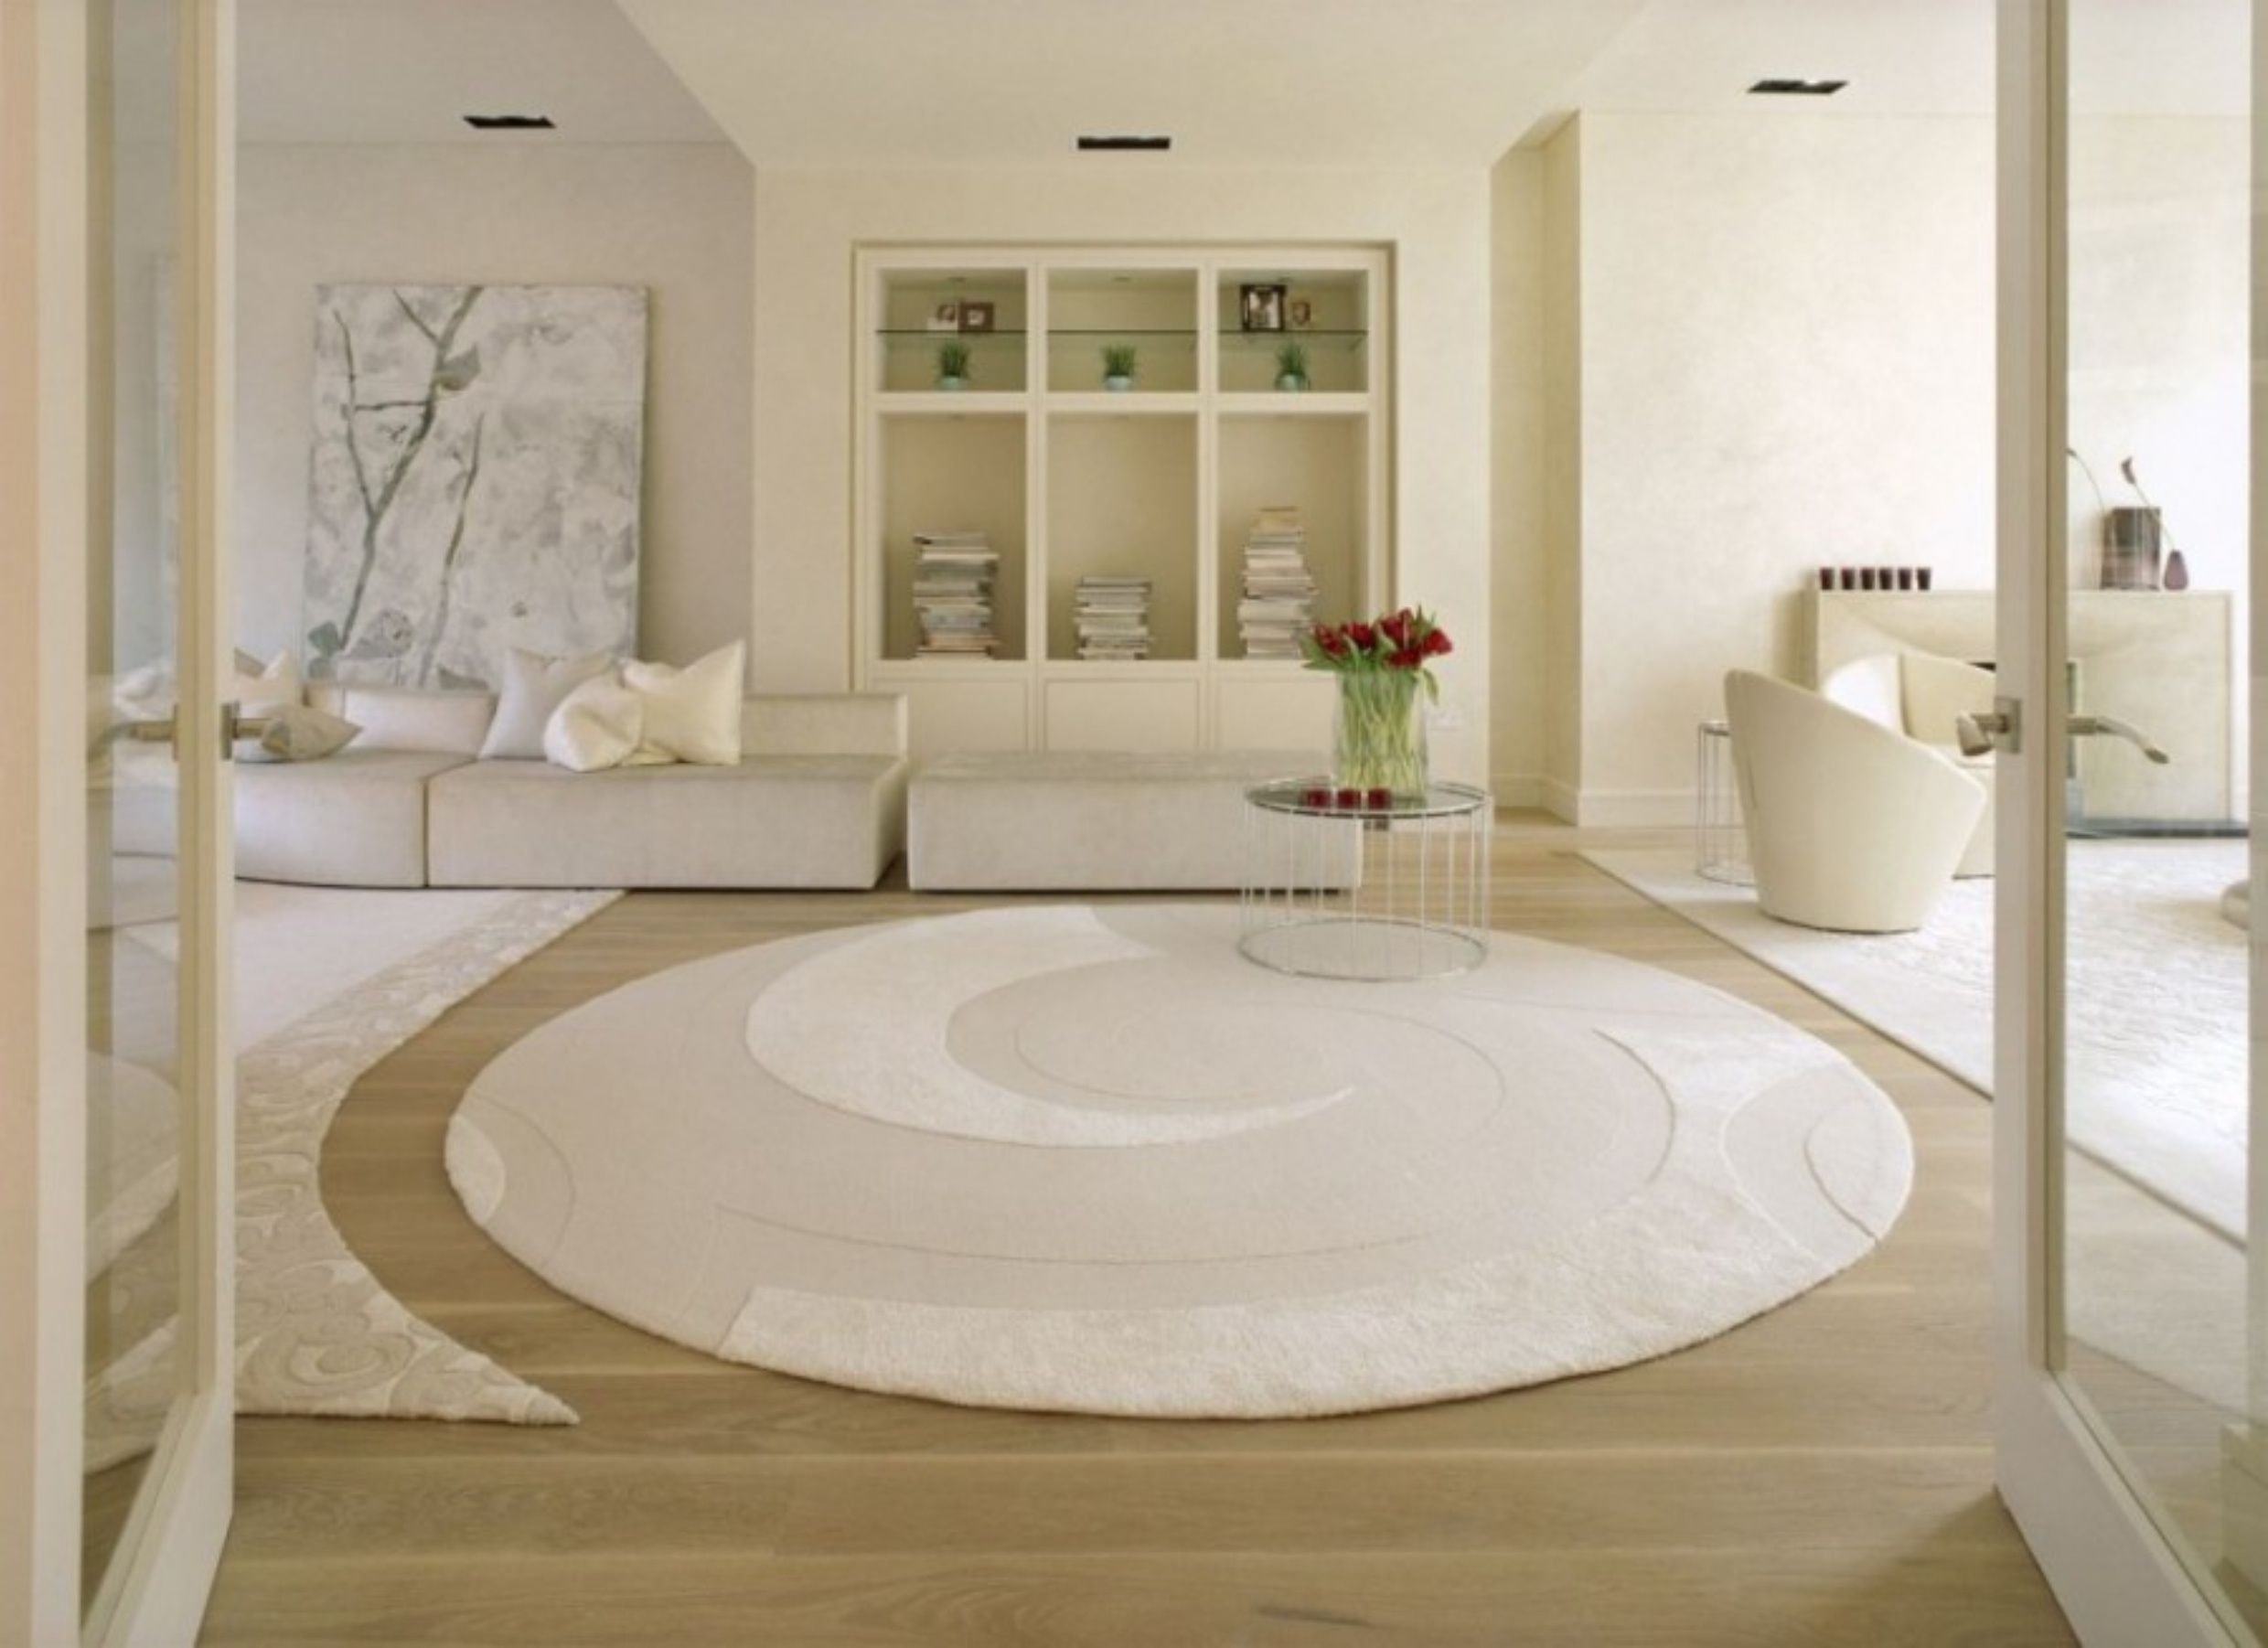 White round extra large bathroom rug large bathroom rugs Large master bath plans